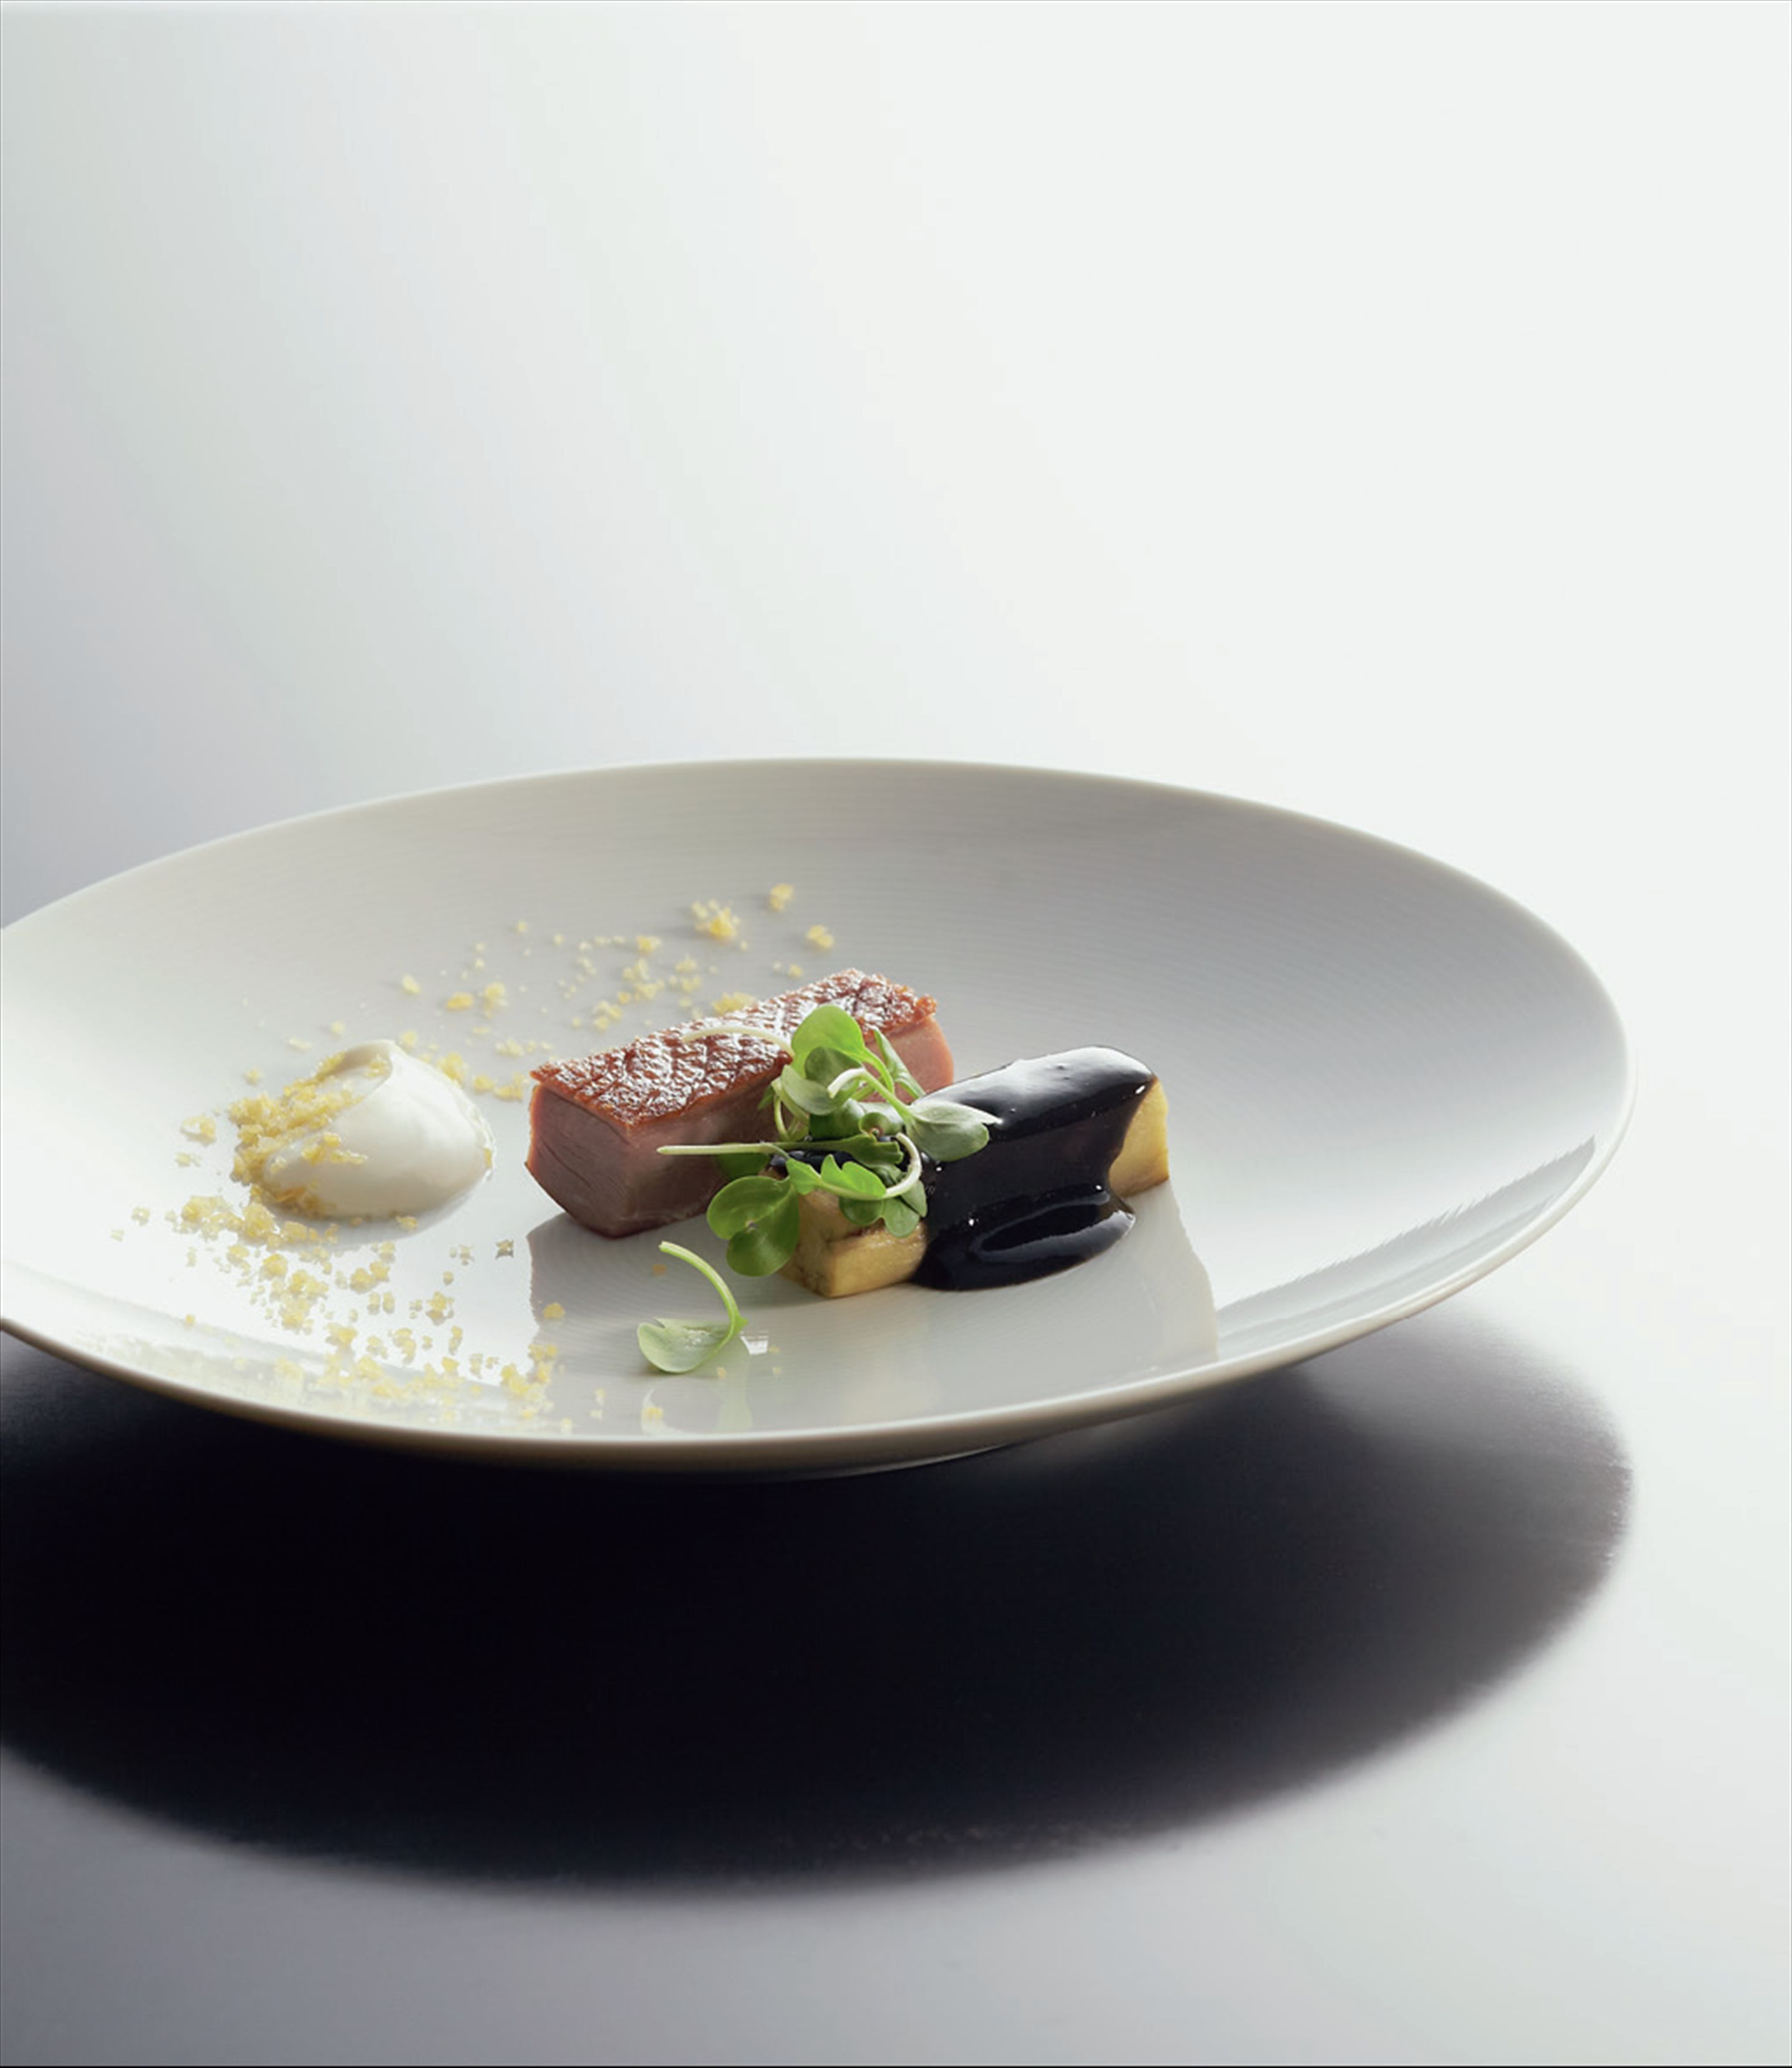 Roast muscovy duck with steamed eggplant, yoghurt and dried scallop